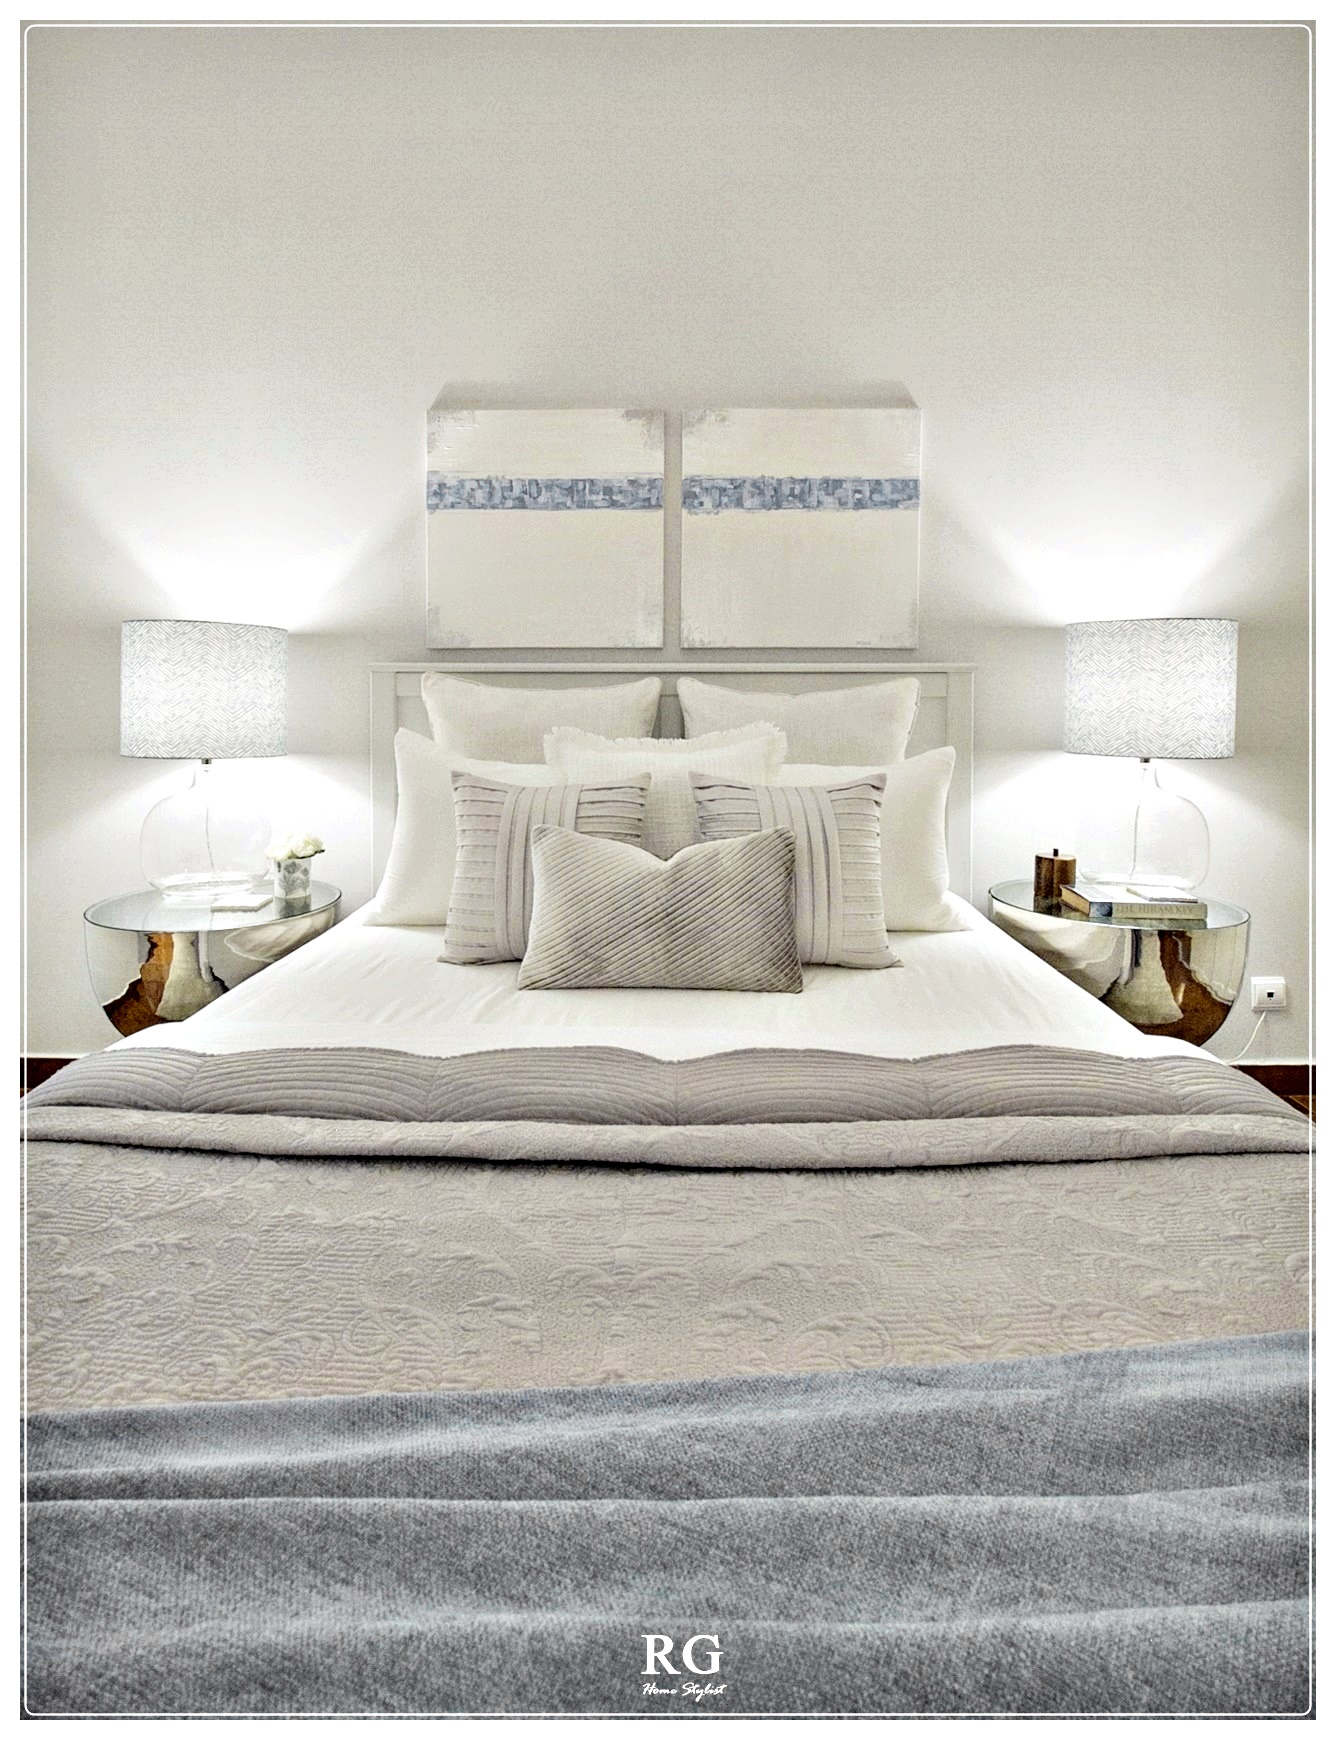 Projeto - White tranquility bedroom